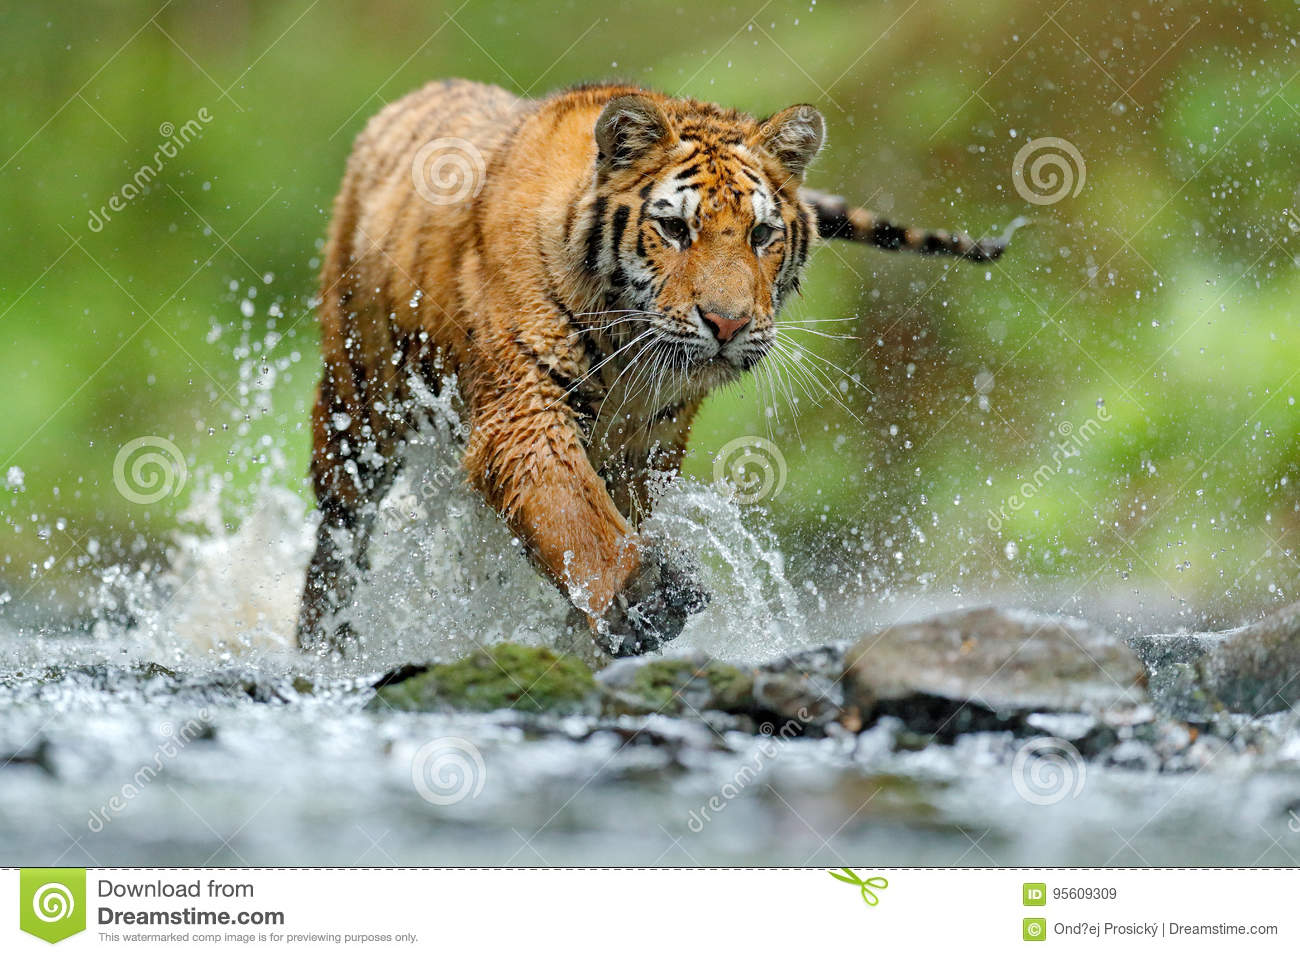 tiger with splash river water. tiger action wildlife scene, wild cat